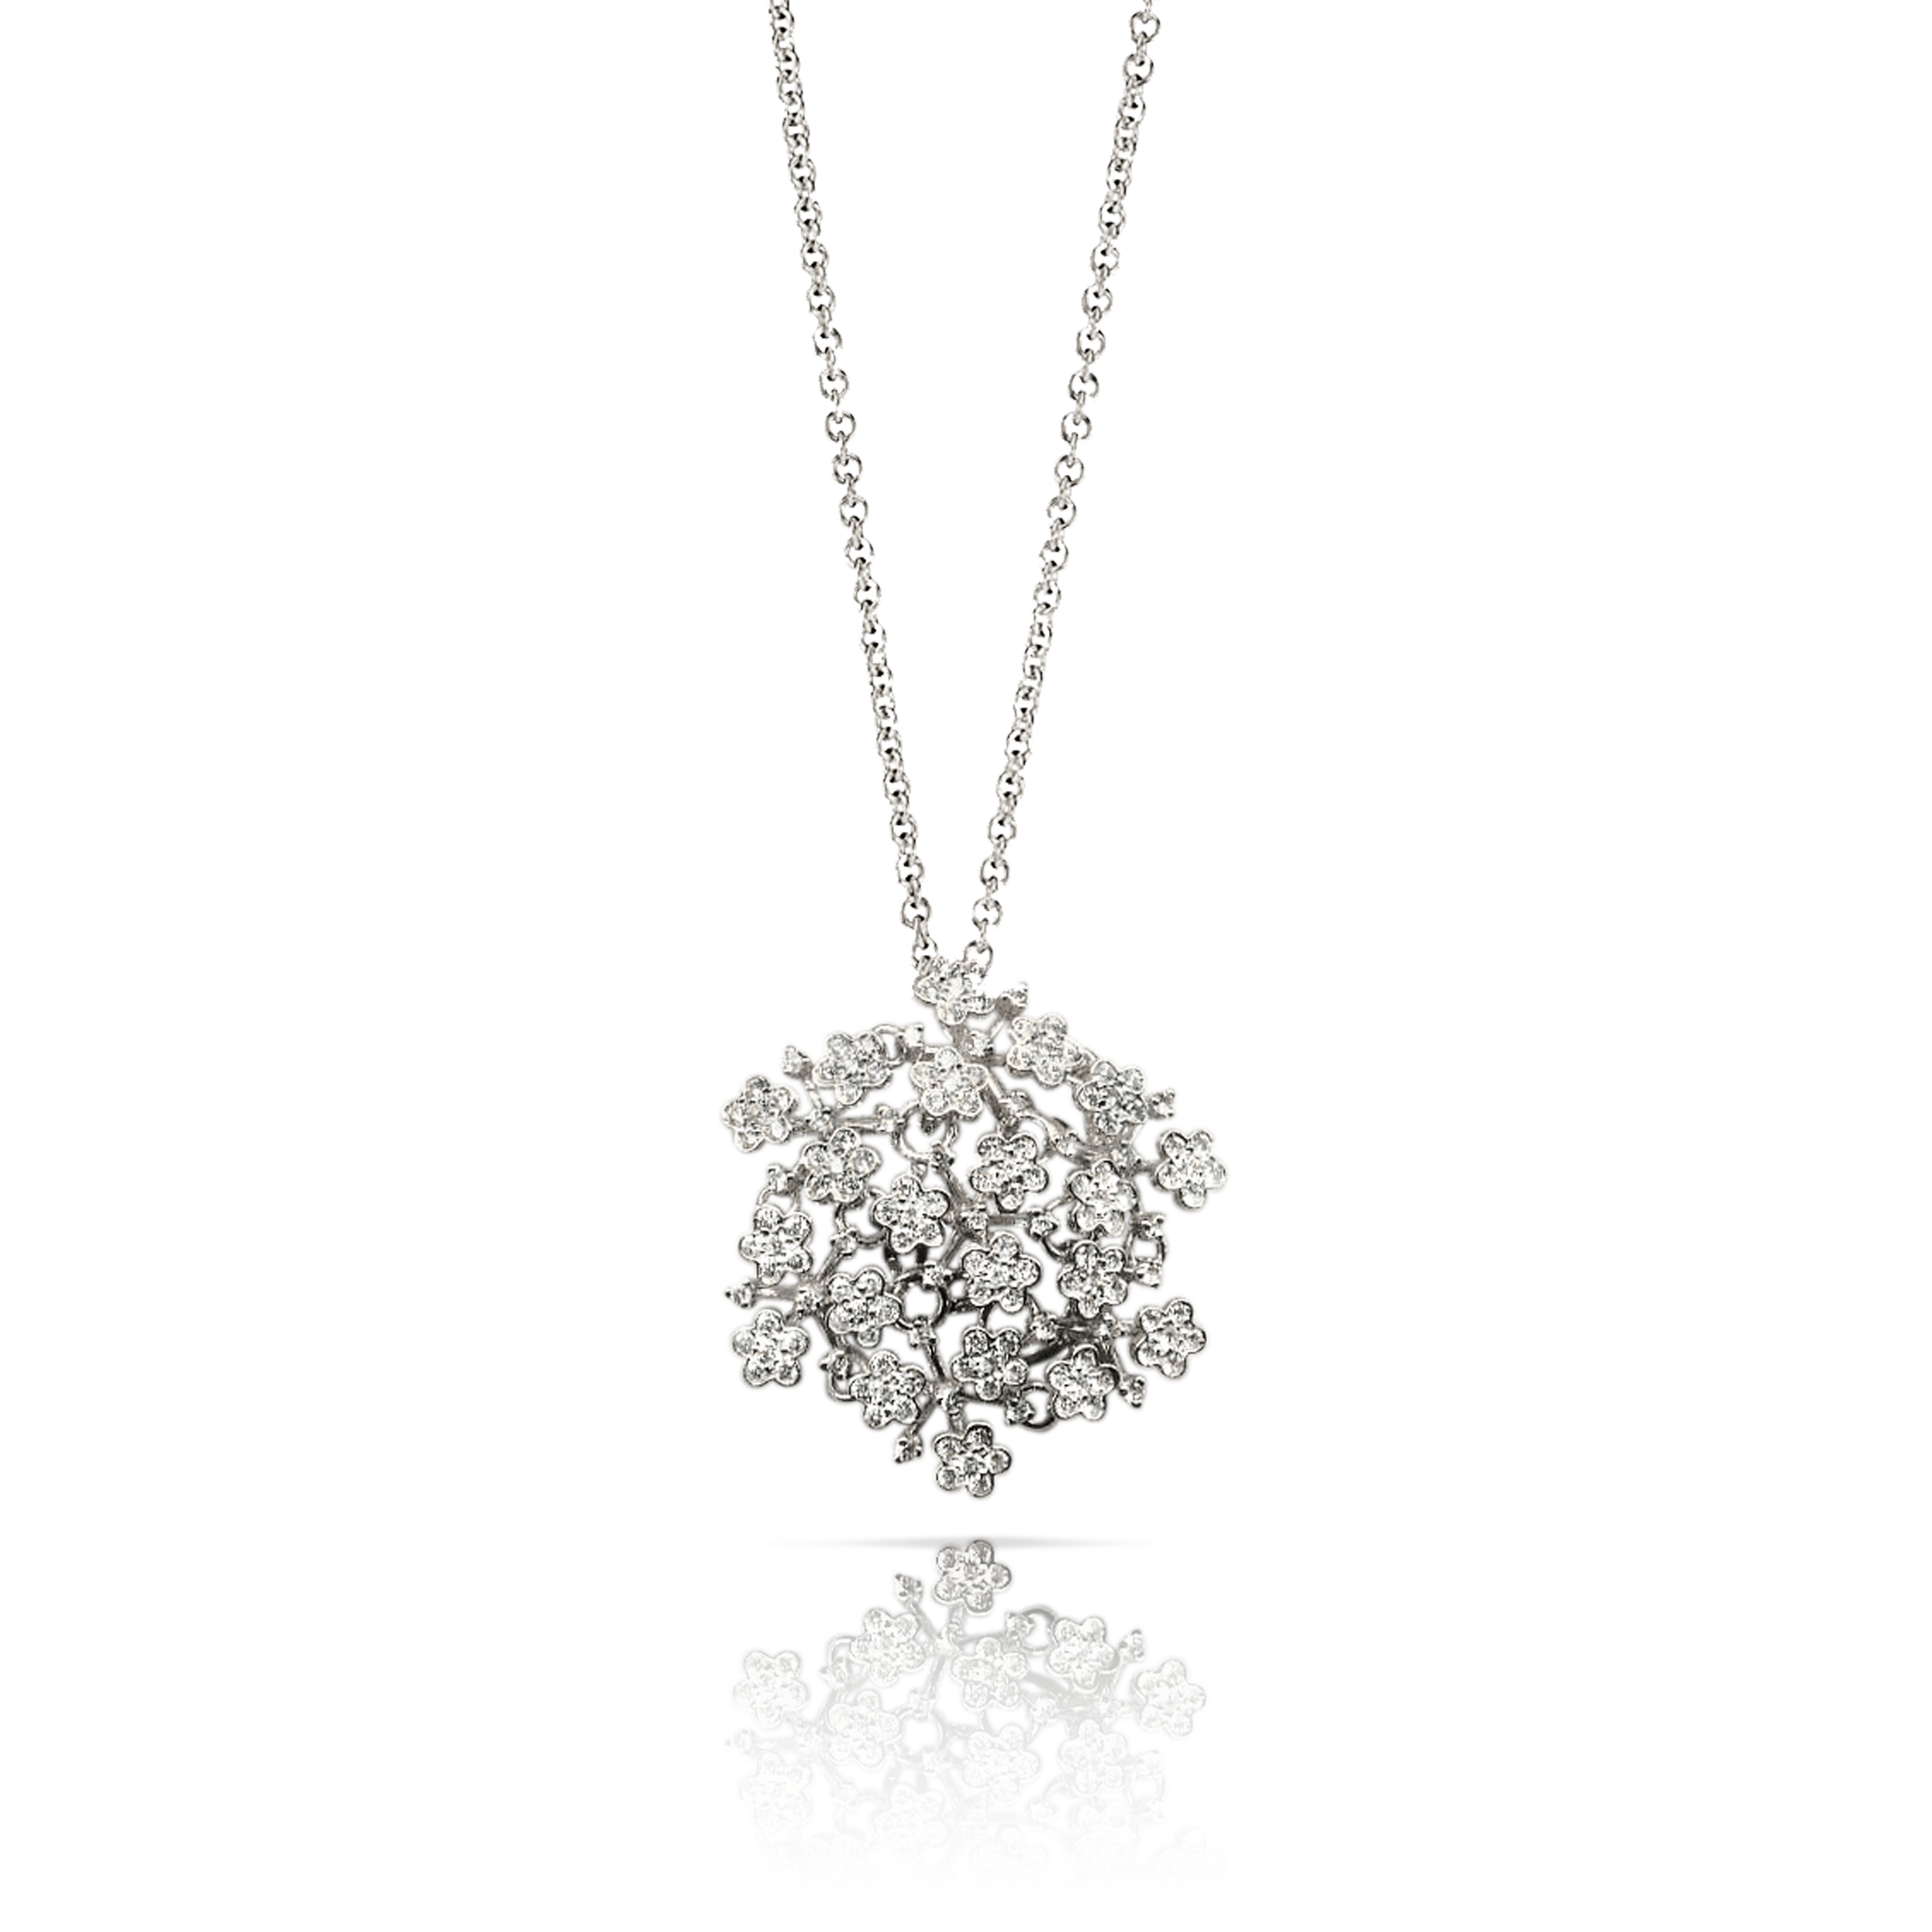 18k White Gold Prato Fiorito Necklace with Diamonds